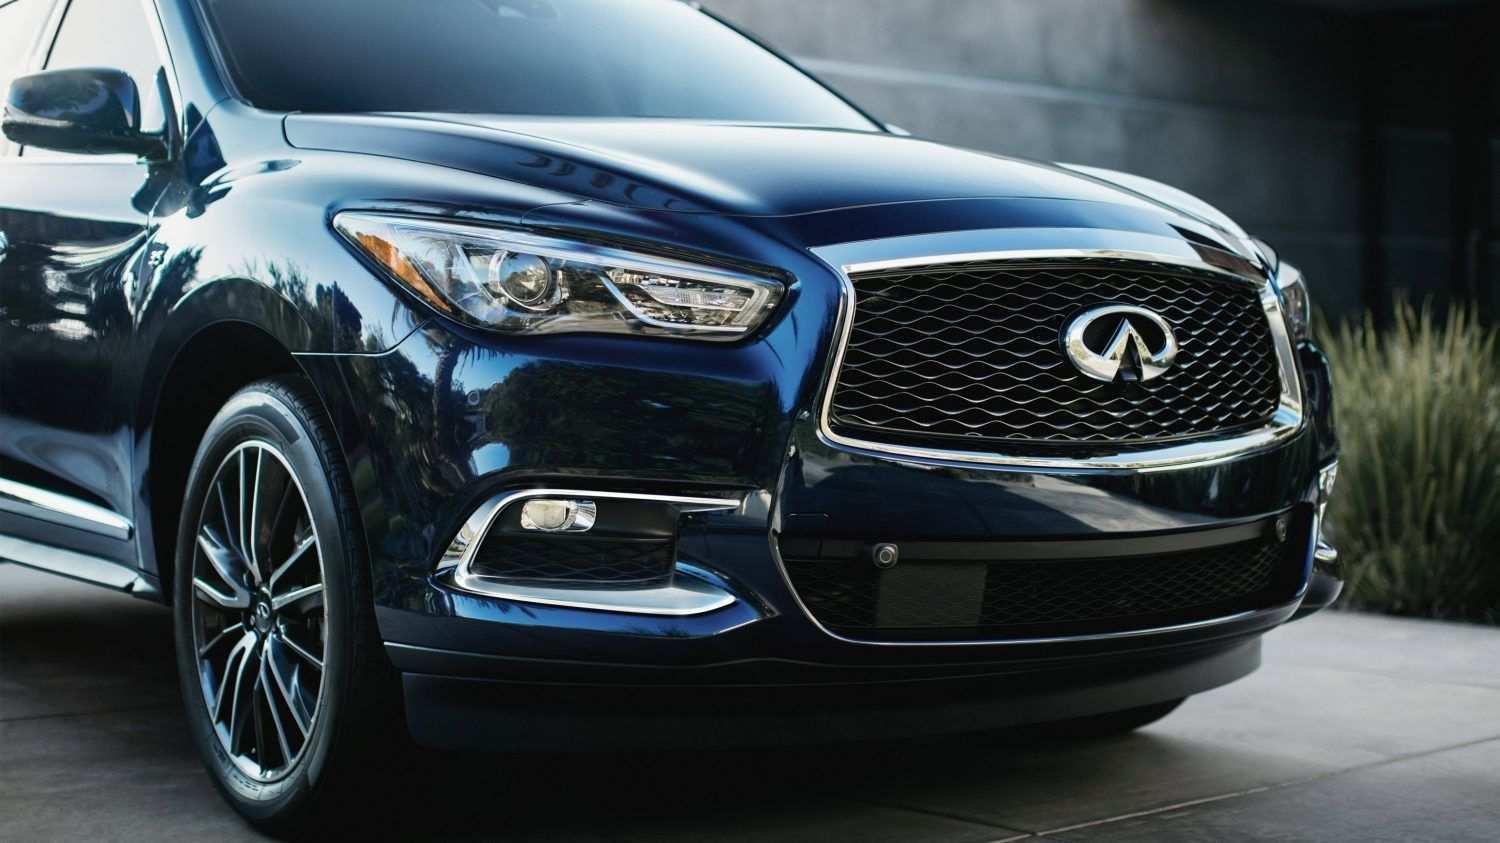 62 Gallery of The Infiniti Jx35 2019 Overview Engine by The Infiniti Jx35 2019 Overview